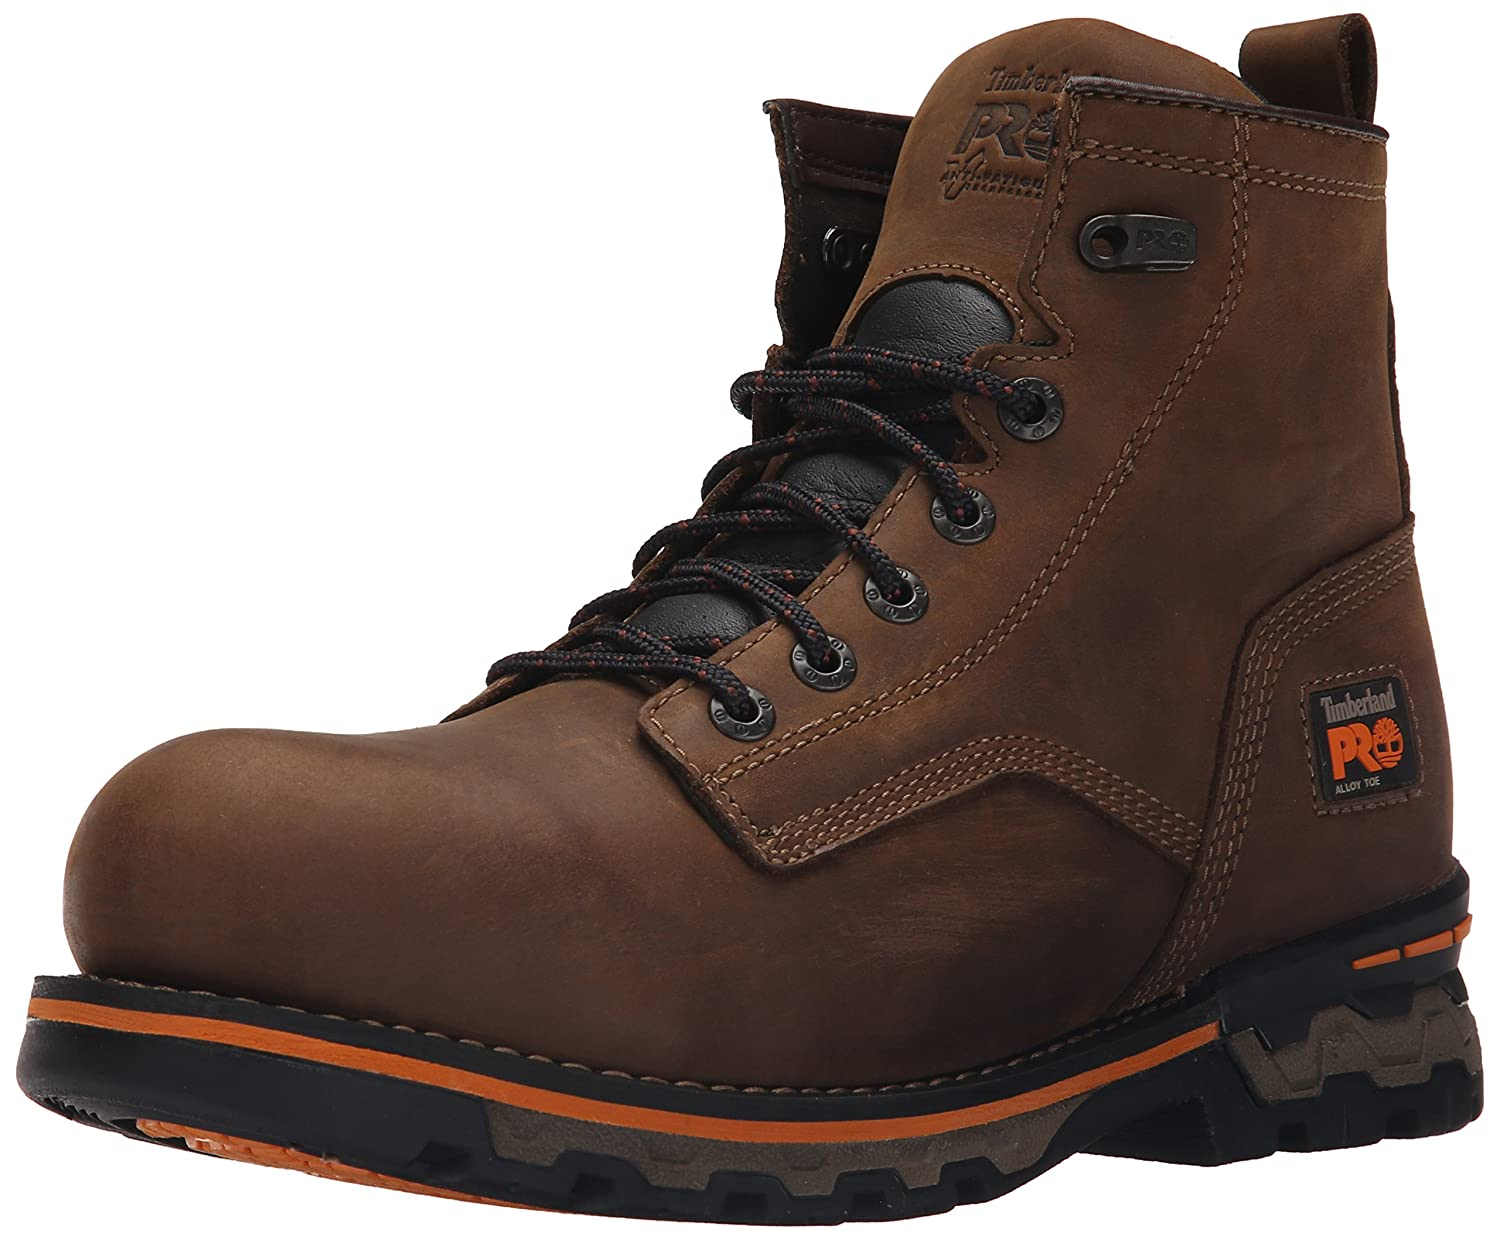 32c66427367 Amazon.com | Timberland PRO Men's AG Boss Alloy-Toe Unlined Work Boot |  Industrial & Construction Boots